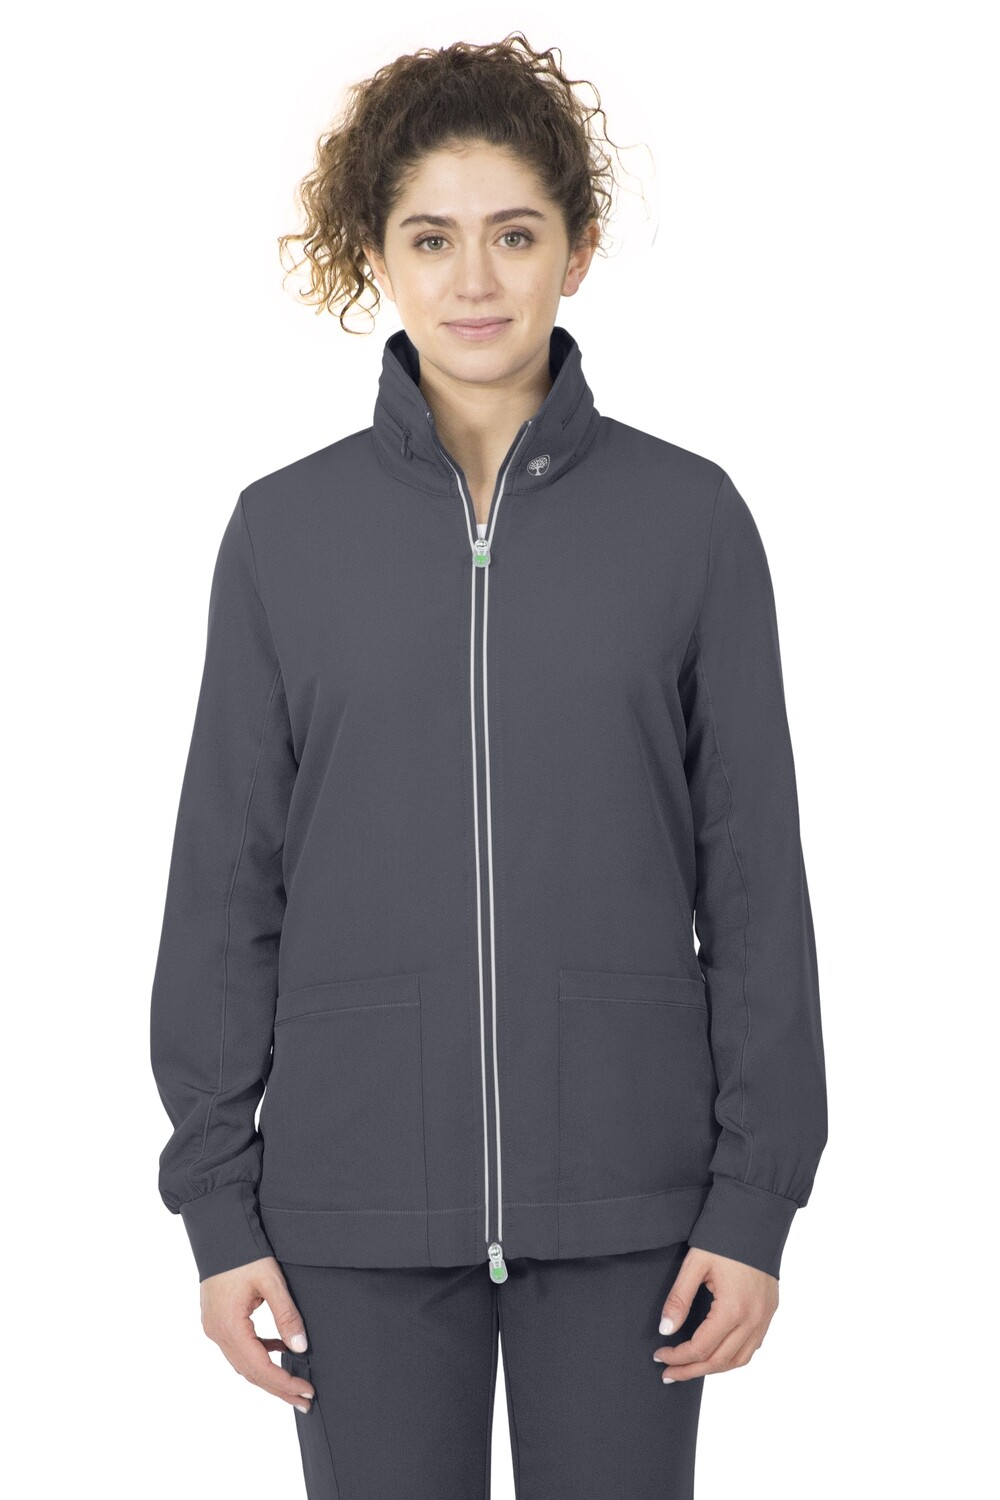 5065 CARRIE JACKET - PL 2XL PEWTER